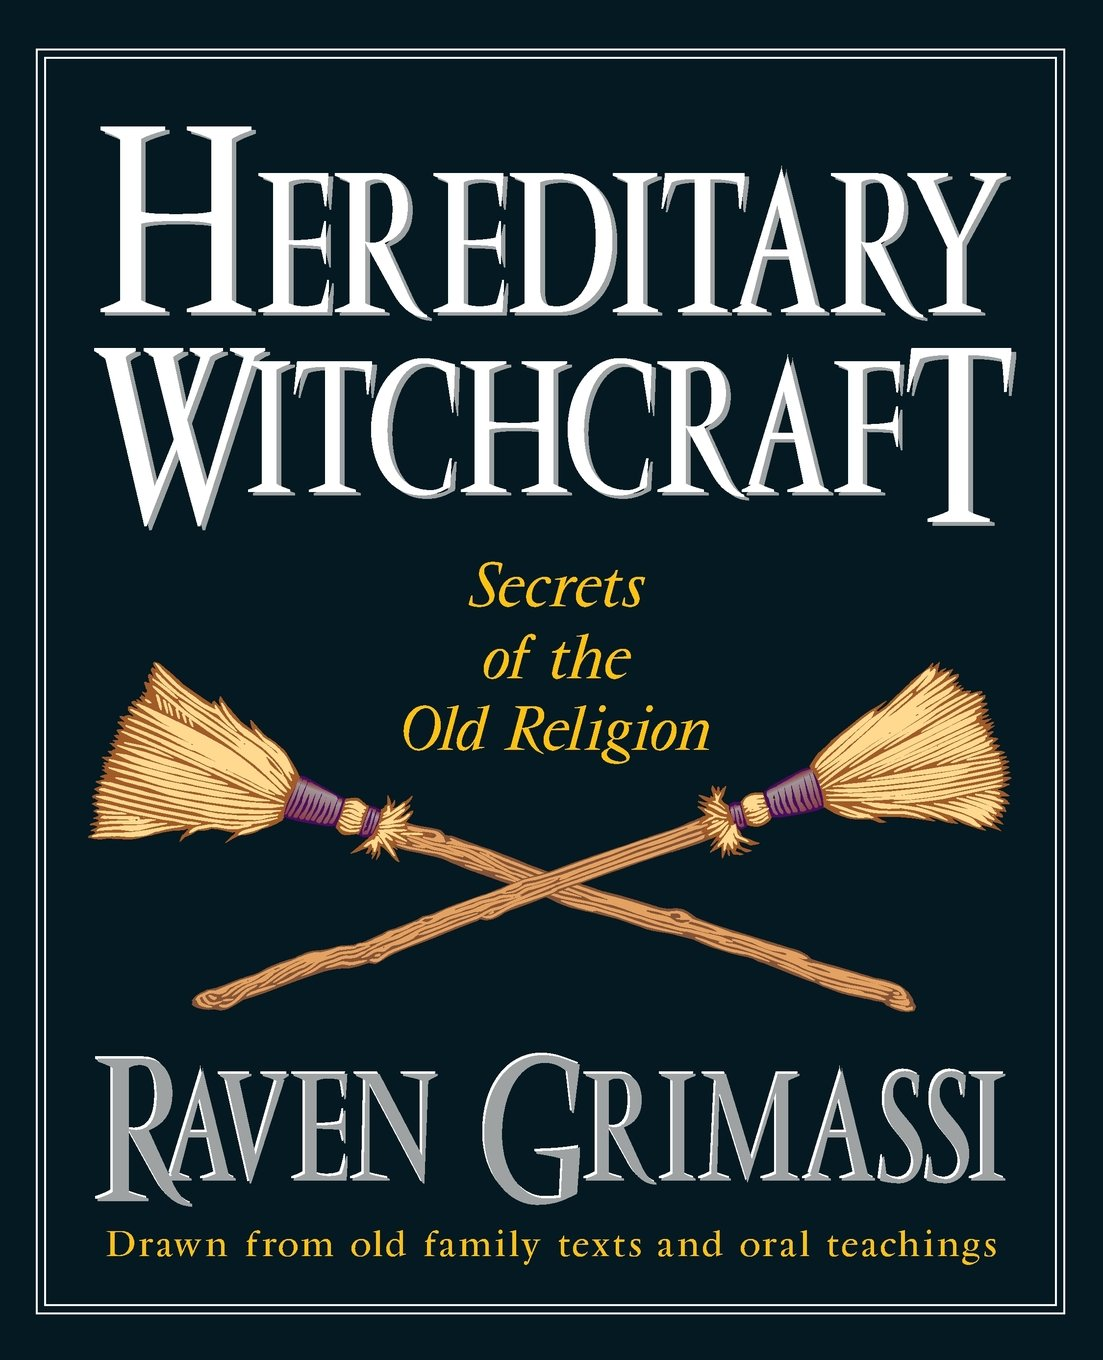 Hereditary Witchcraft: Secrets of the Old Religion: Amazon